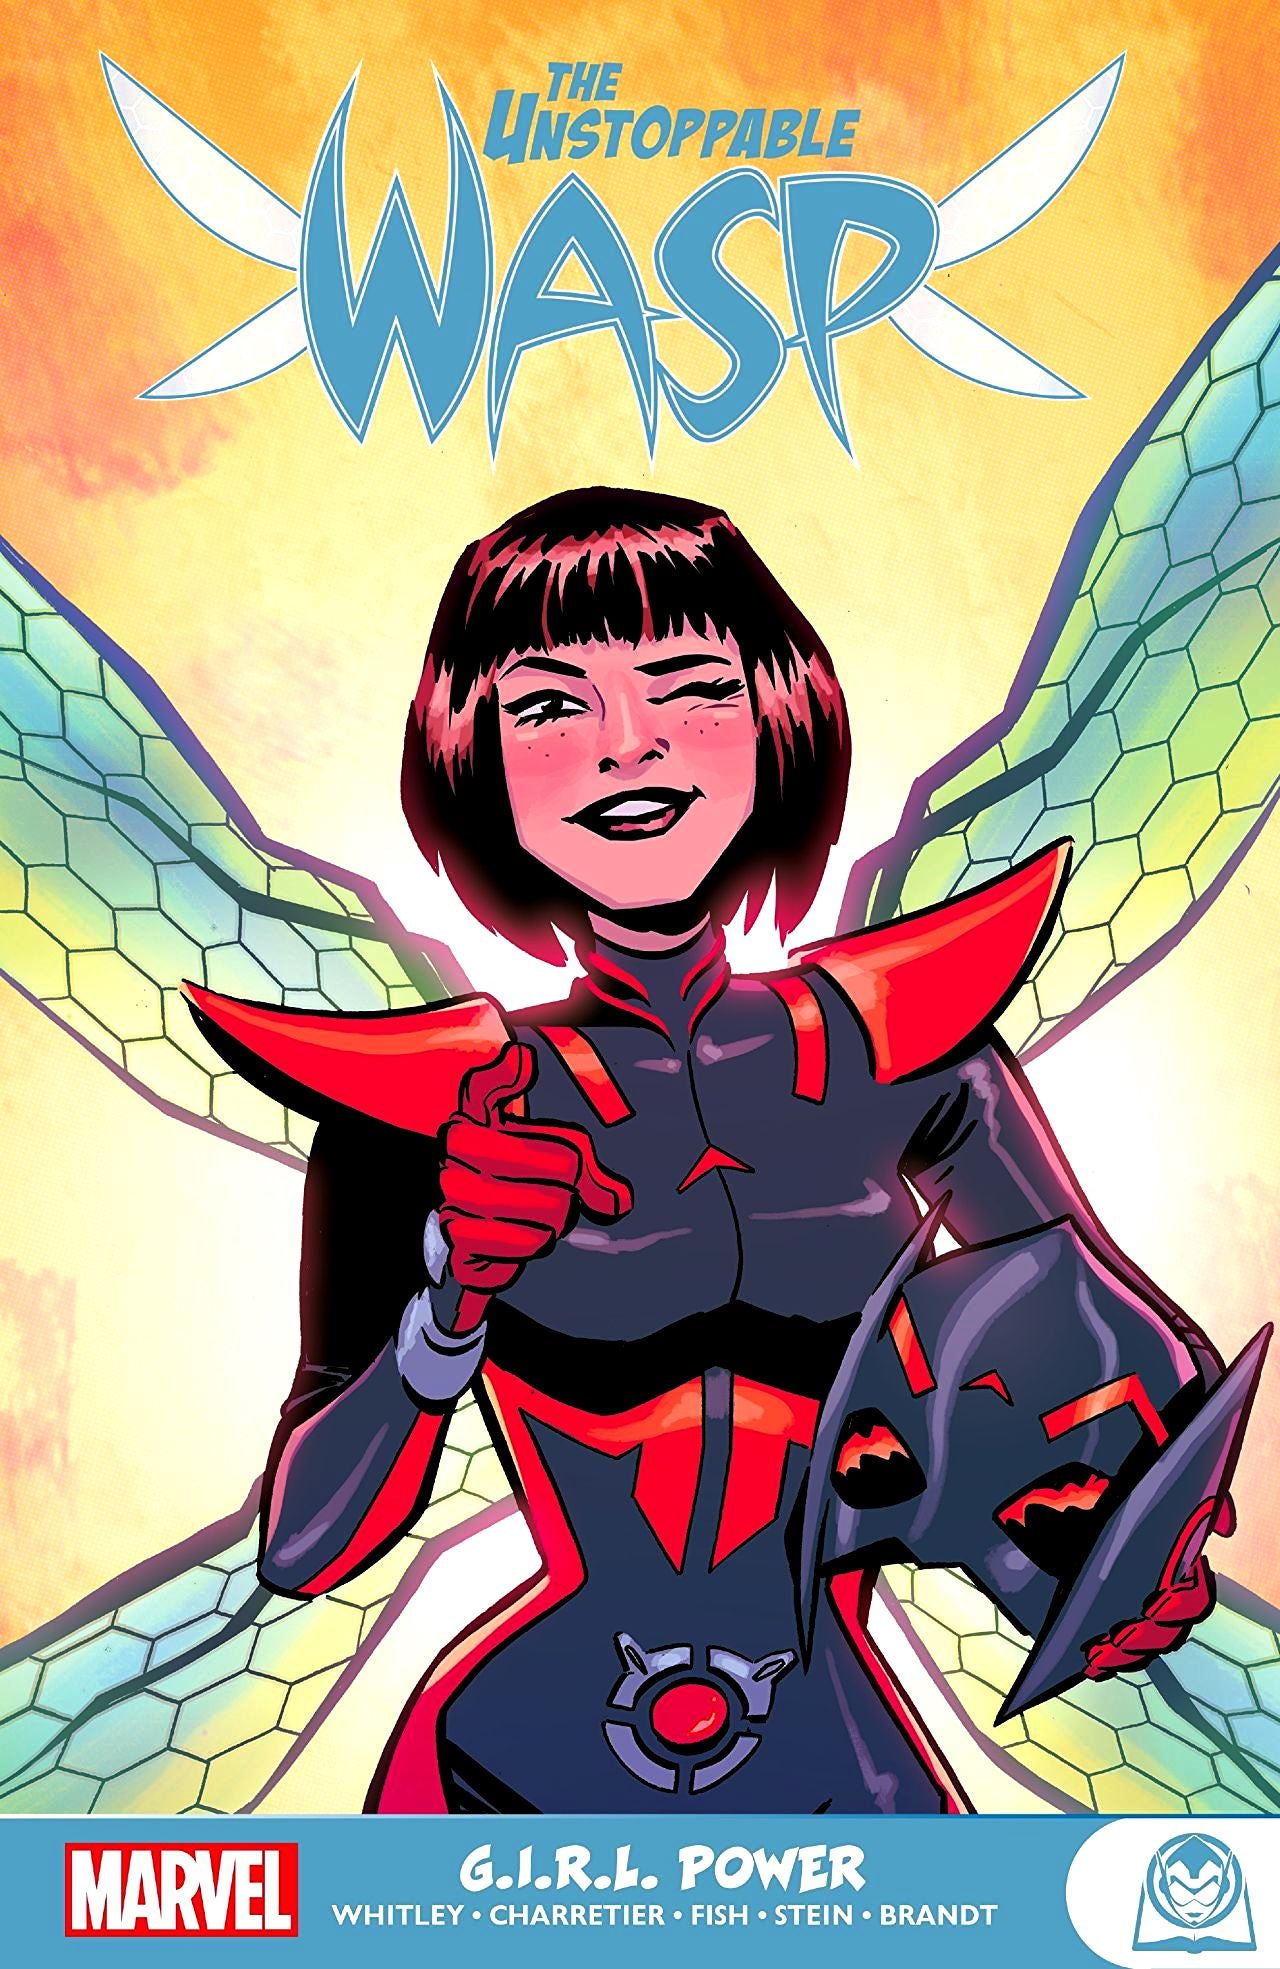 Unstoppable Wasp (2017): G.I.R.L. Power